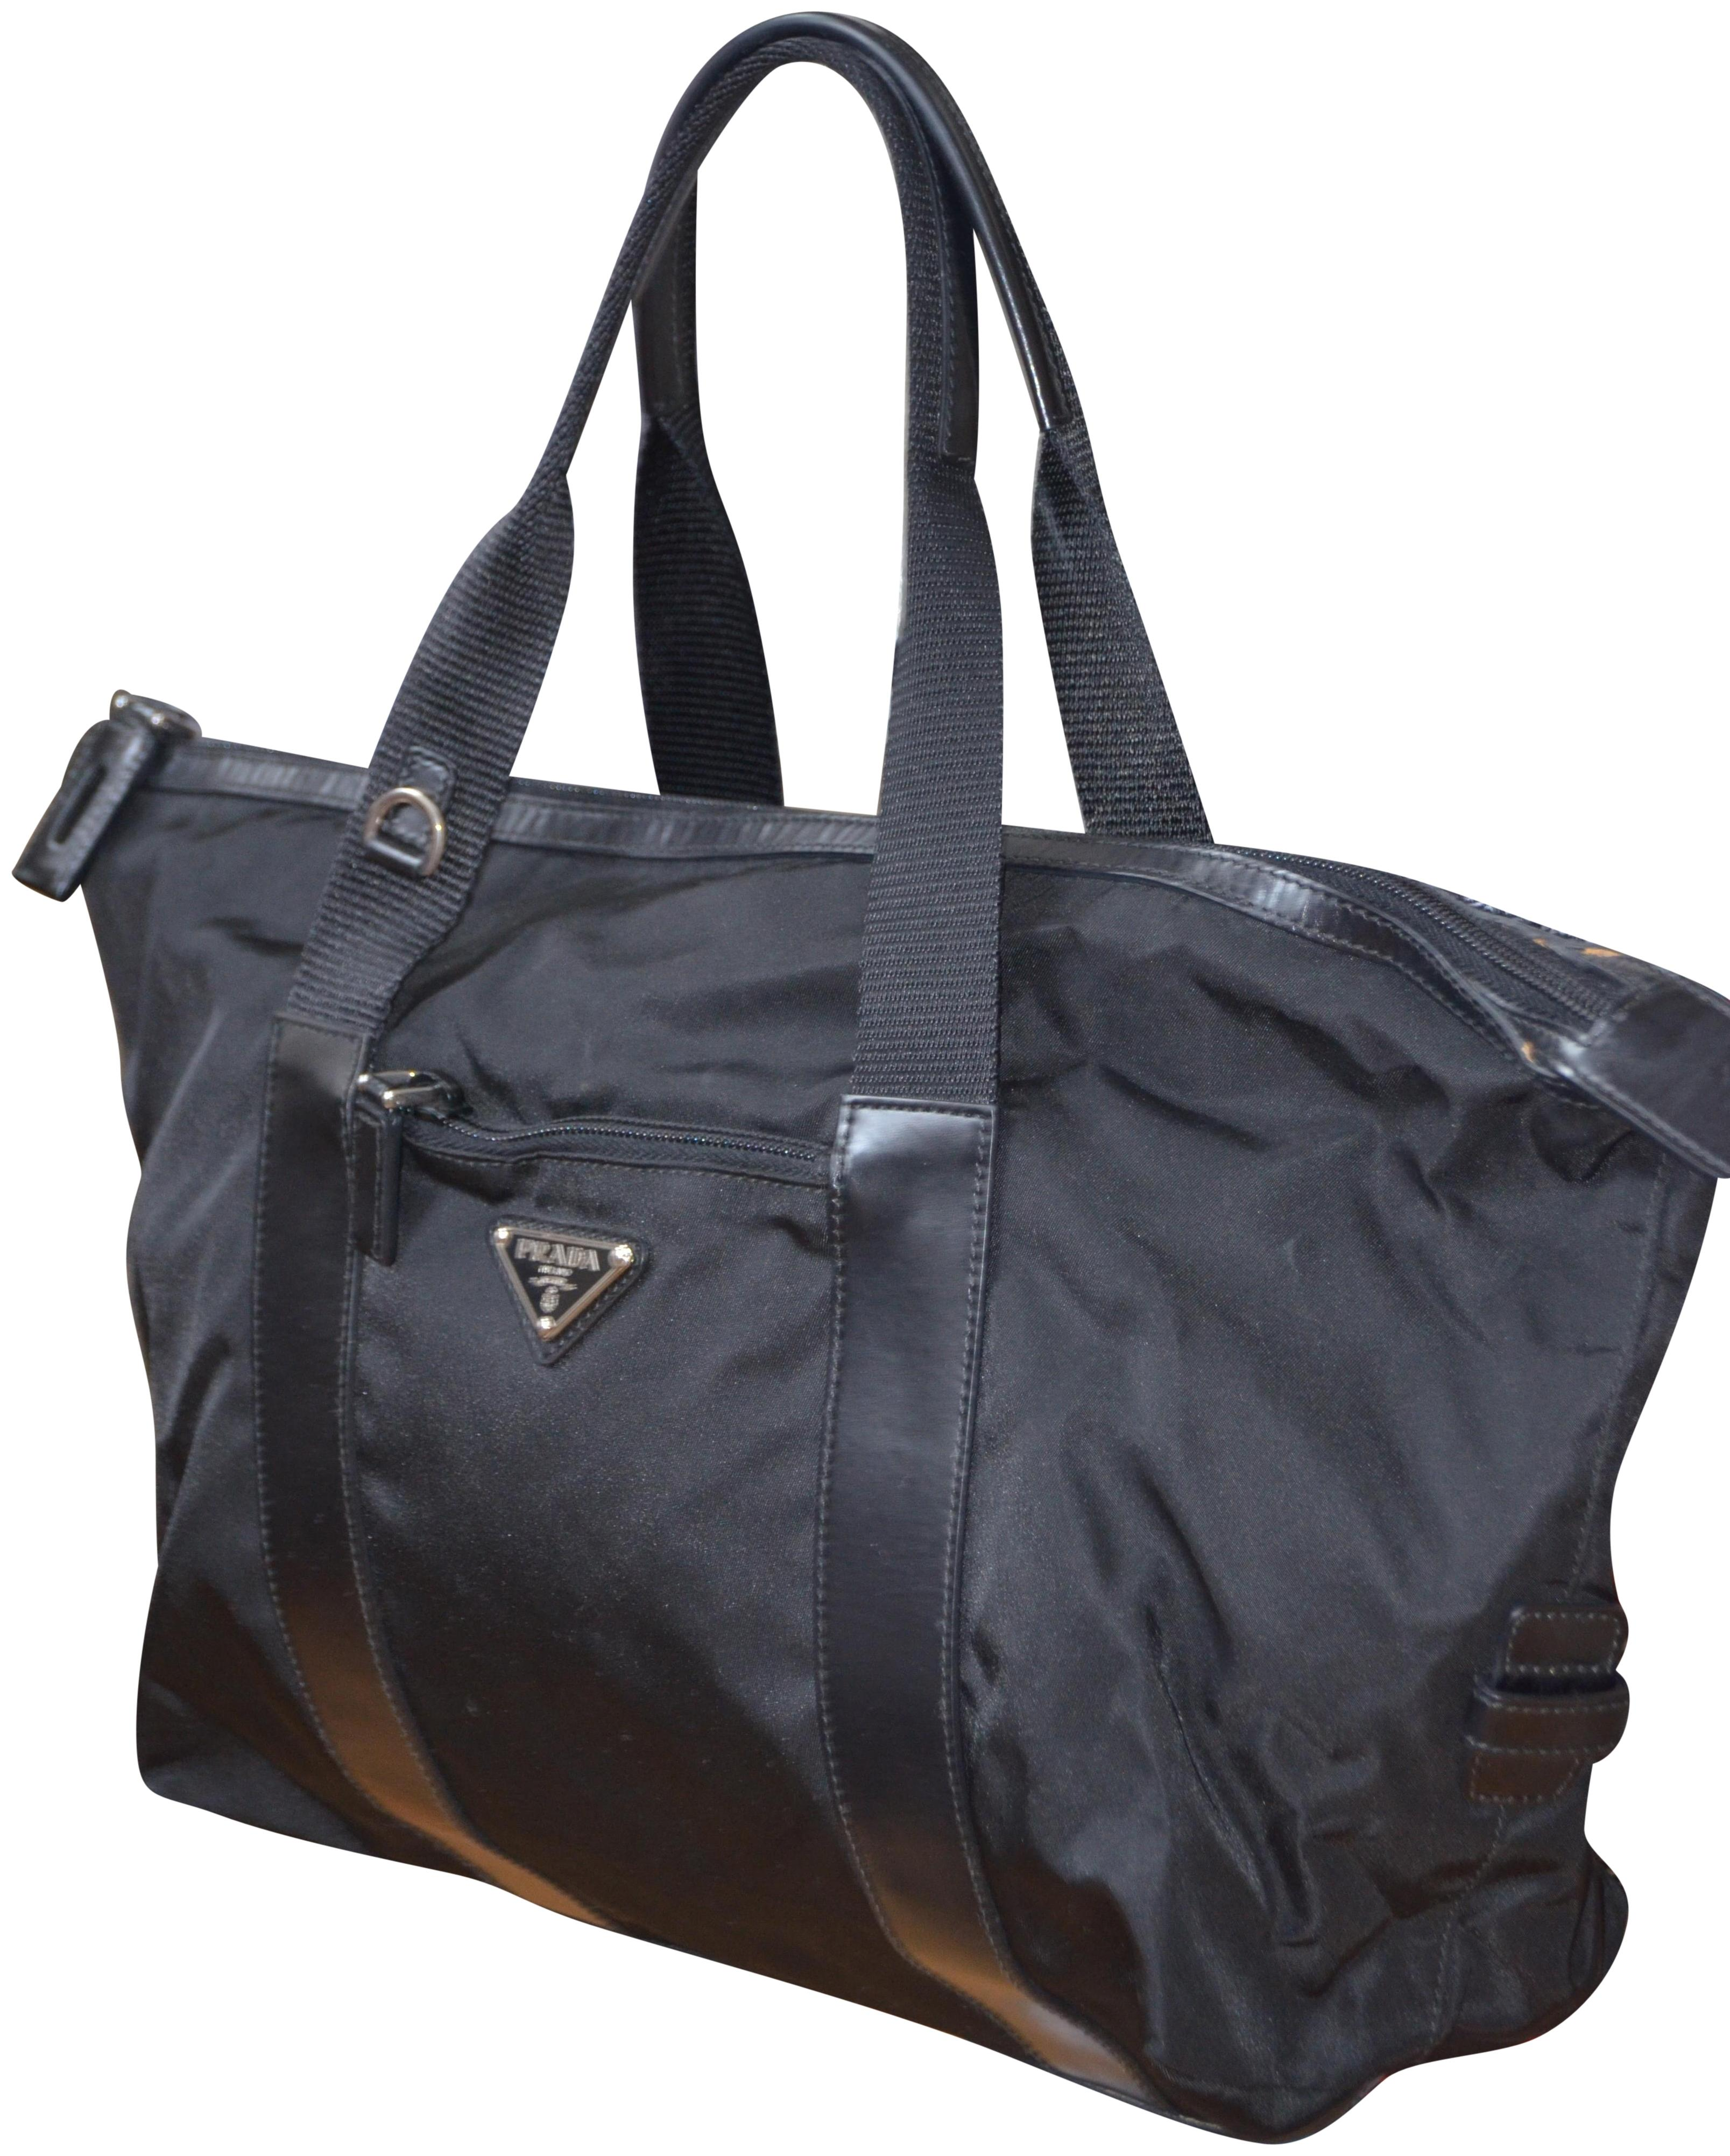 292c89b7ec4a cheap prada adjustable handle tote bag 94795 dc099; inexpensive prada tote  in black 4bdde c505a